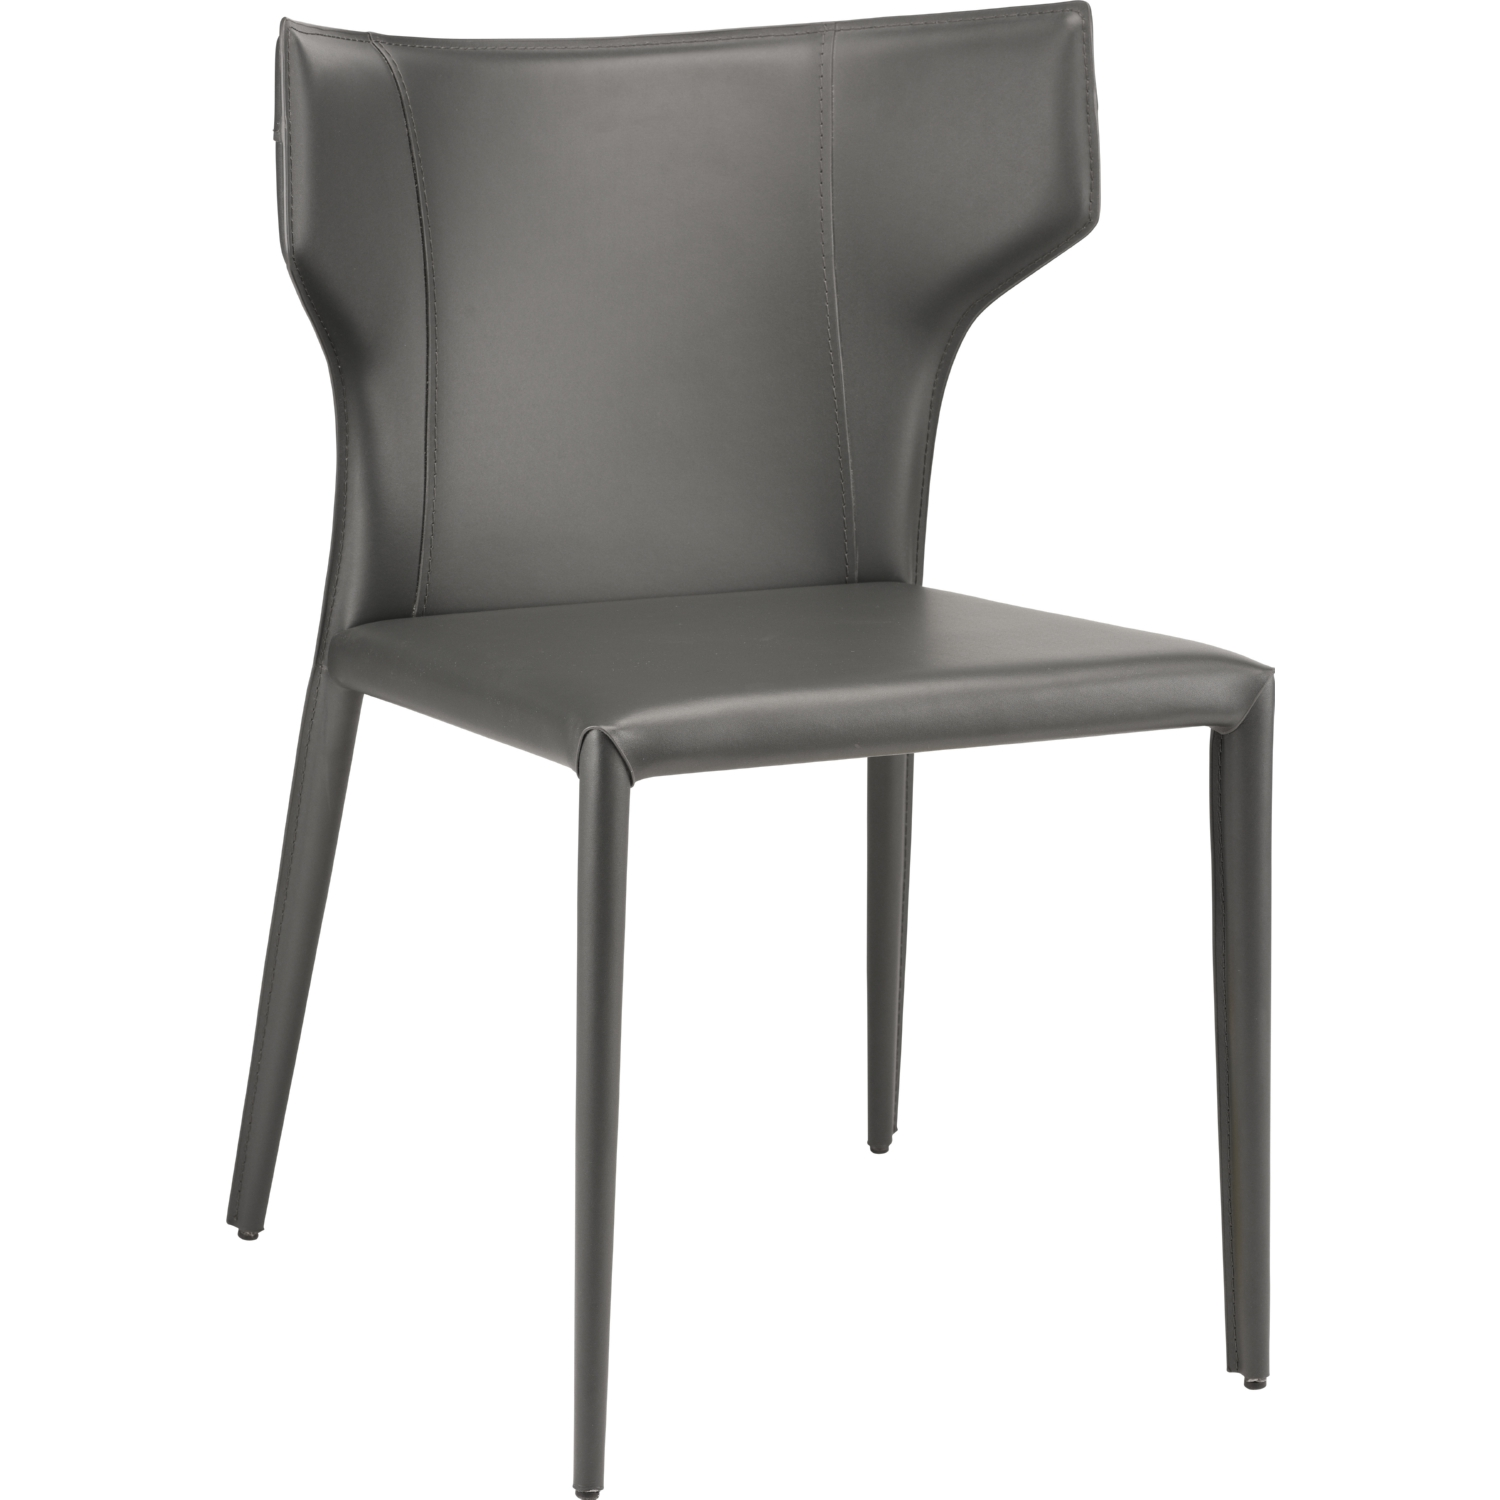 Wayne Dining Chair In Dark Grey Leather W/ Wing Back (Set Of 4)